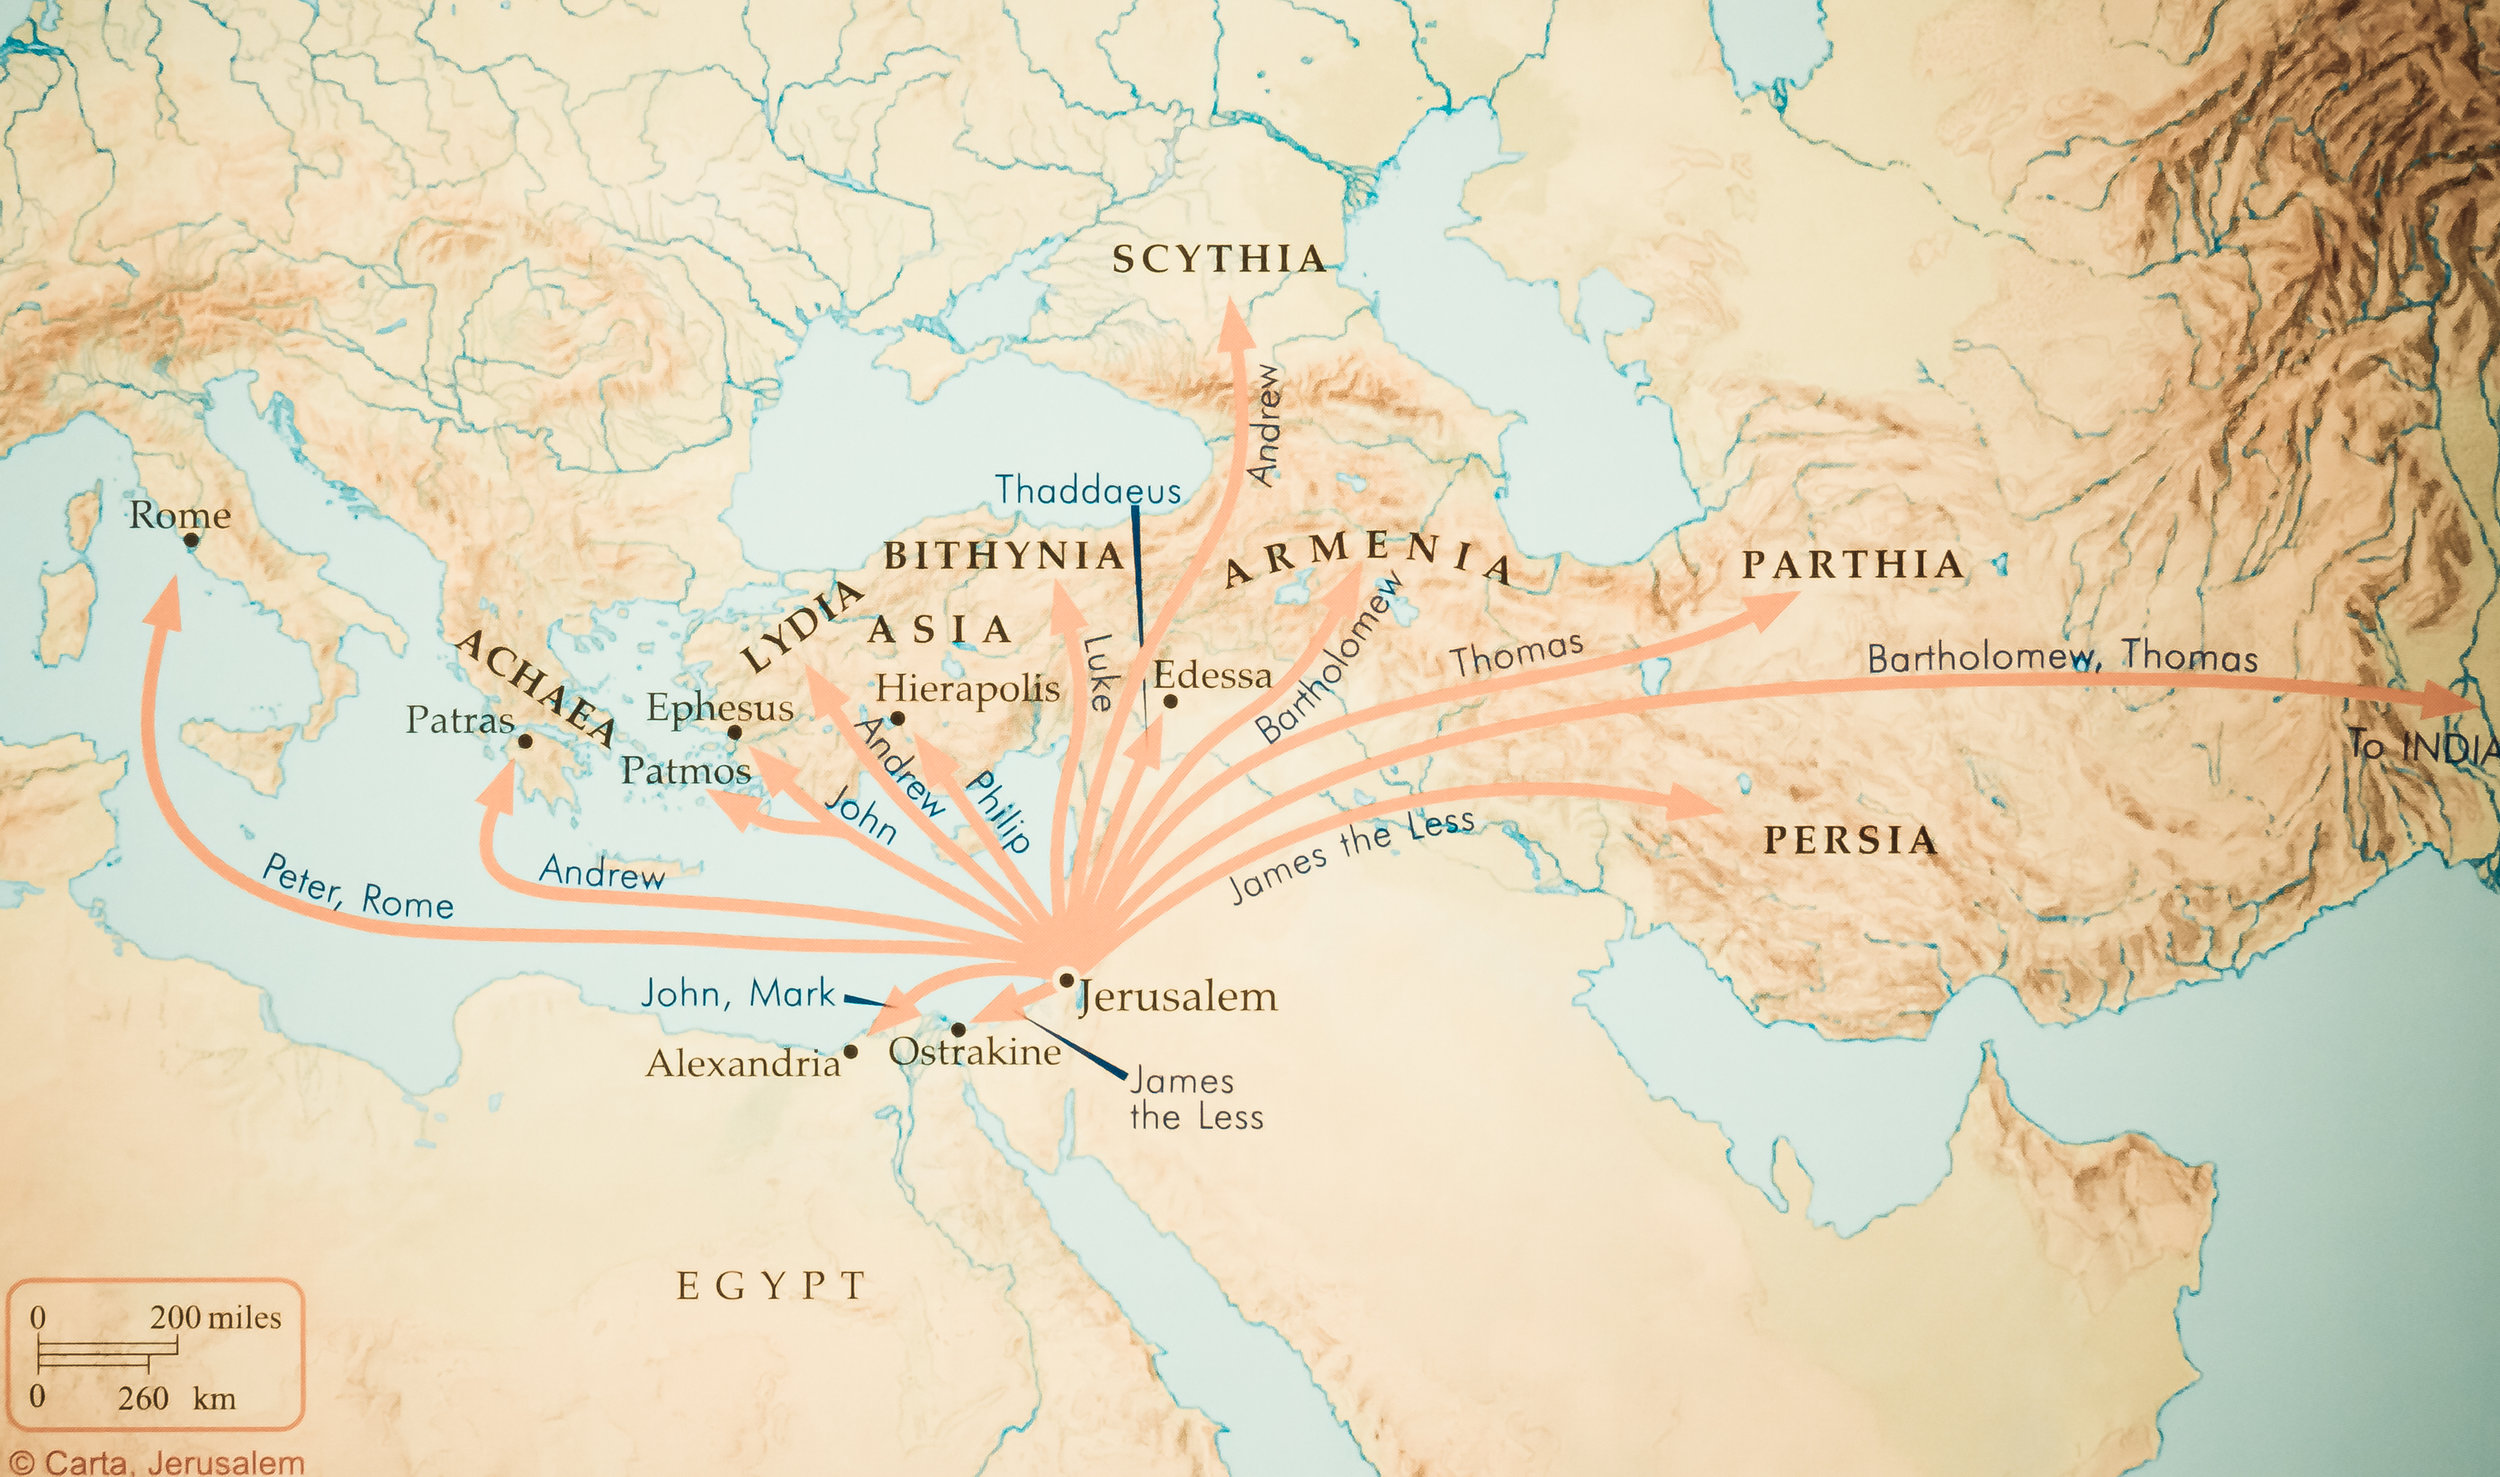 Figure 3 - The Spread of Christianity from Jerusalem (Rose Publishing)